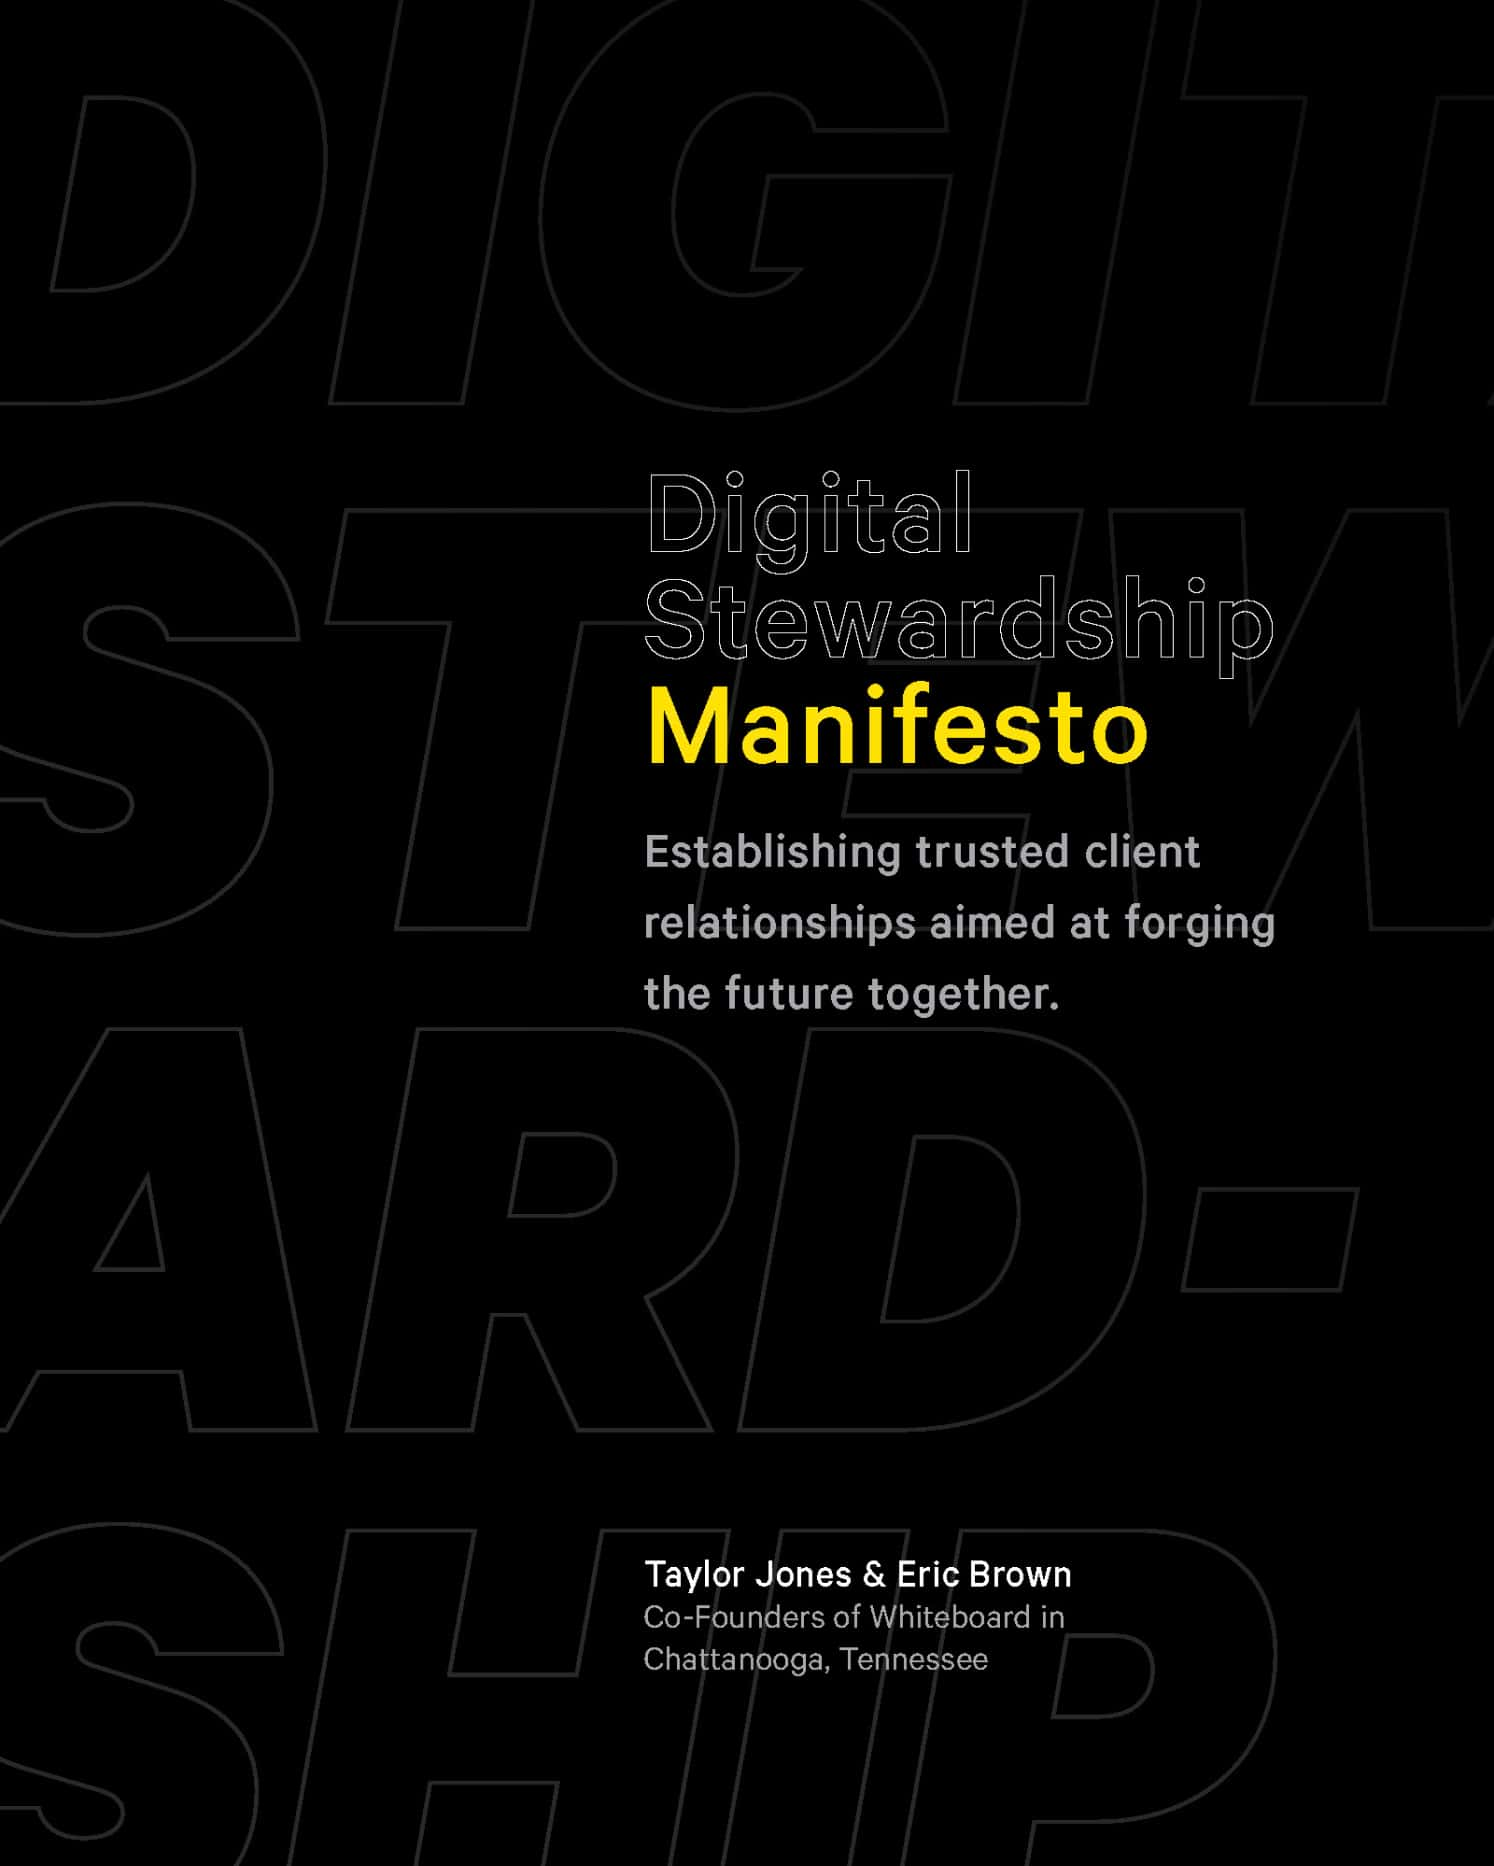 Mockup of the PDF cover for the Digital Stewardship Manifesto